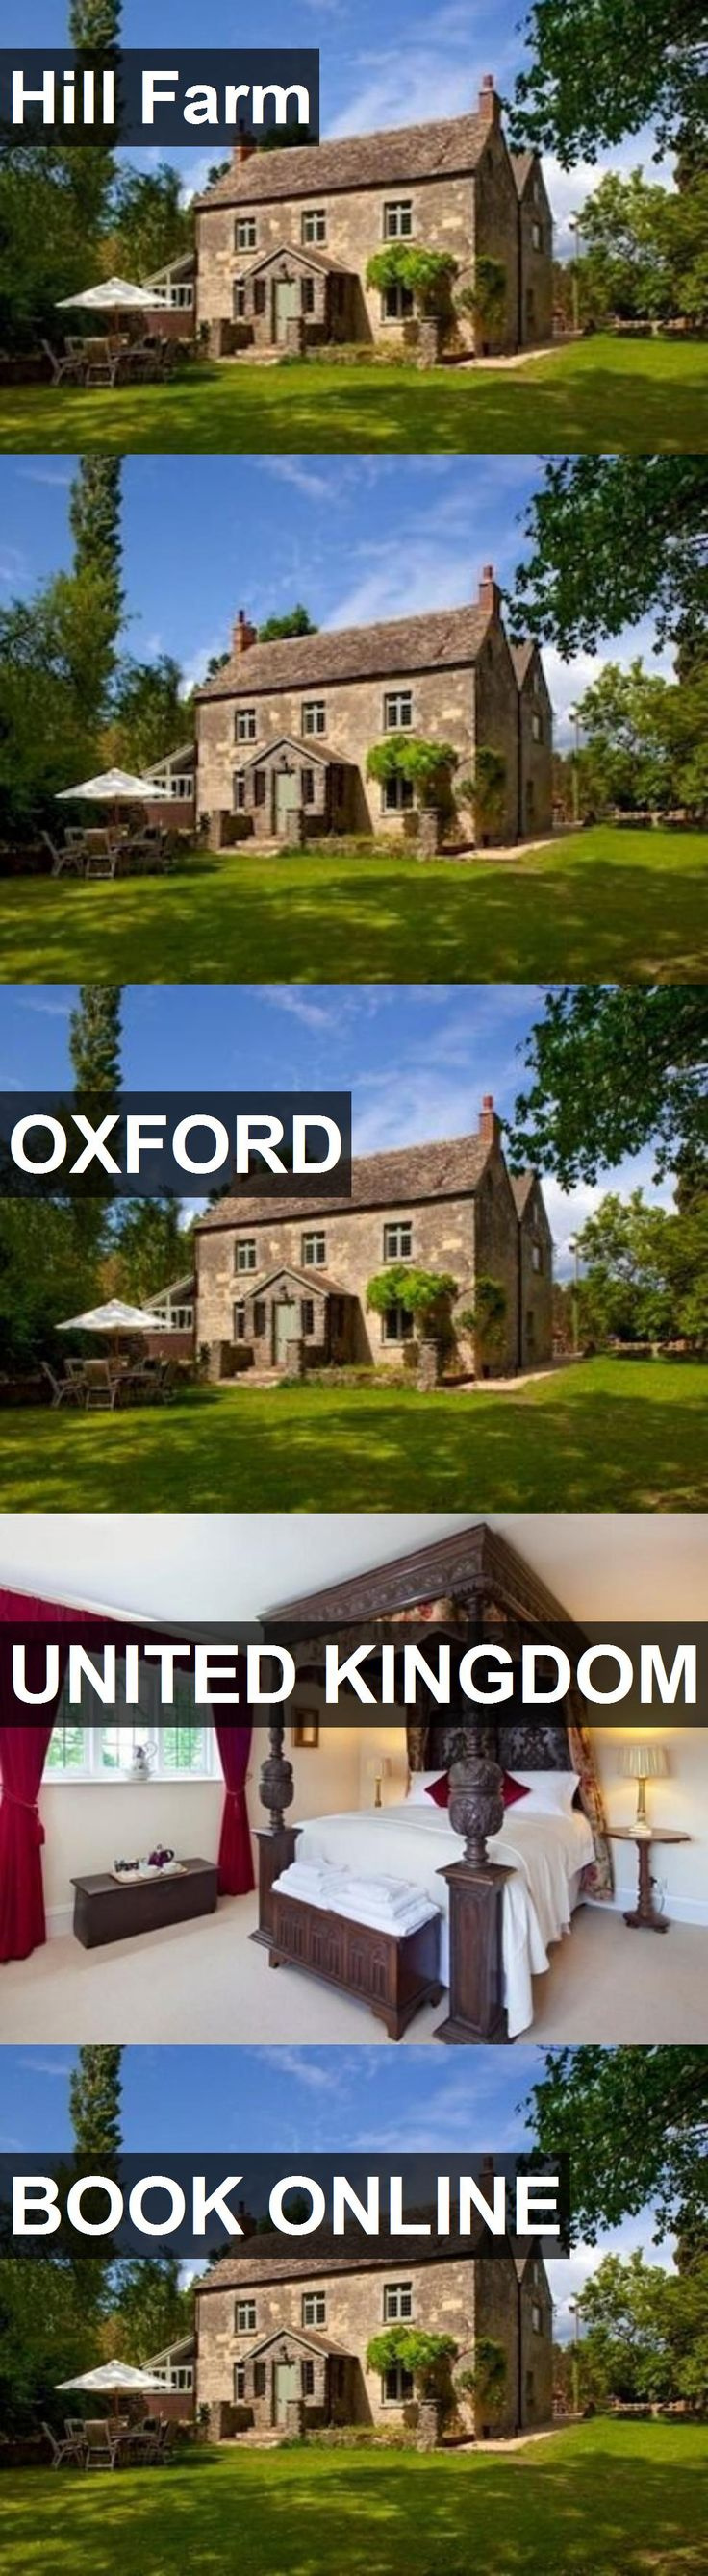 Hotel Hill Farm in Oxford, United Kingdom. For more information, photos, reviews and best prices please follow the link. #UnitedKingdom #Oxford #HillFarm #hotel #travel #vacation